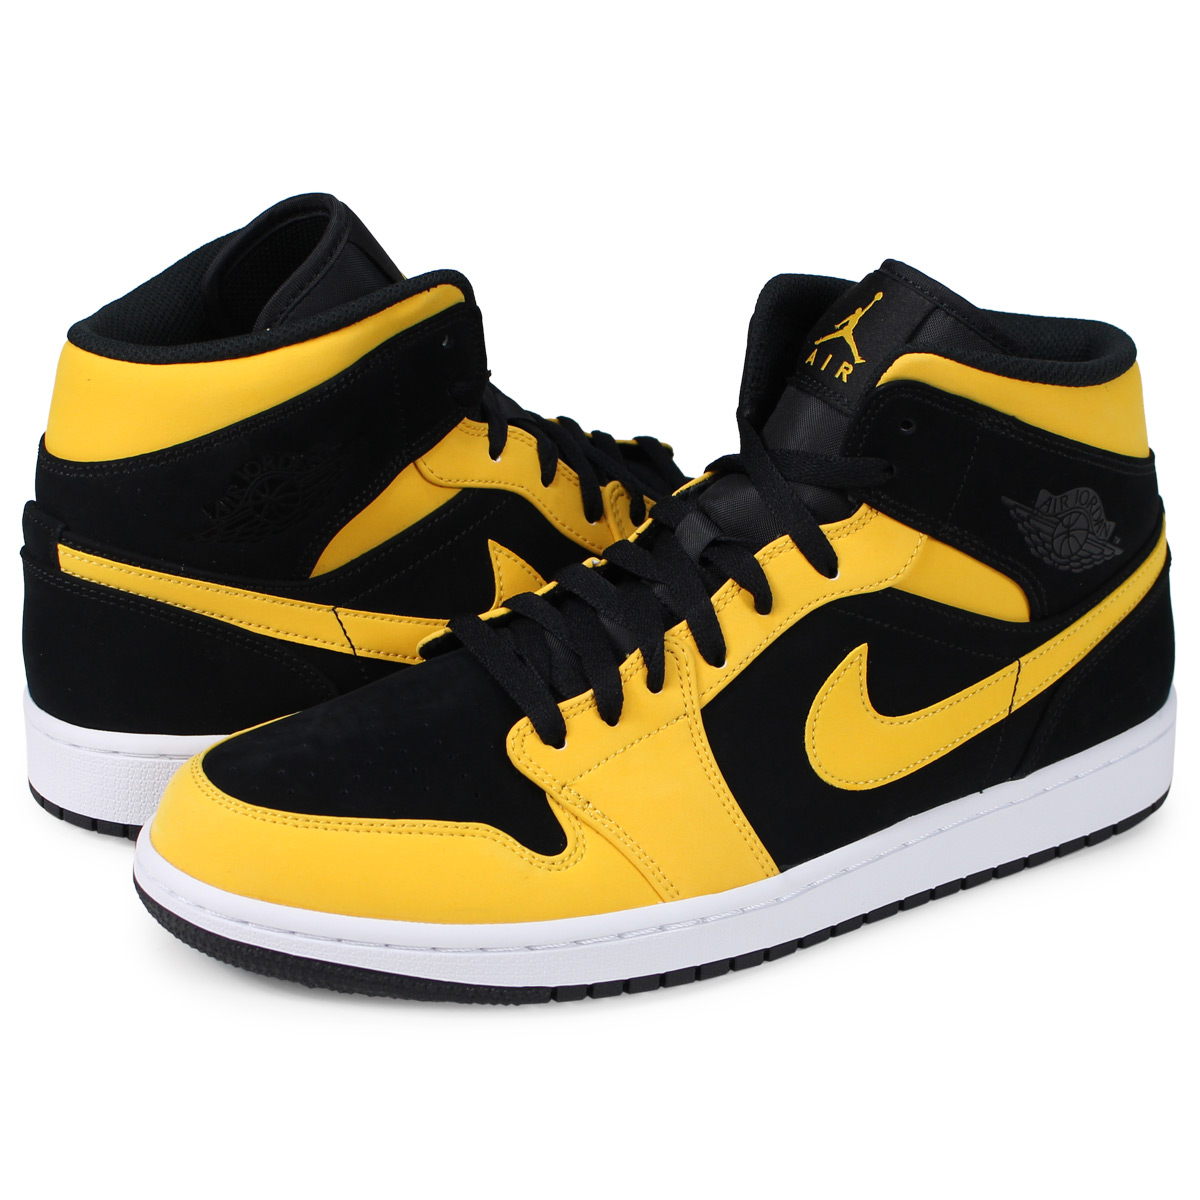 9406e649800d Whats up Sports  Nike NIKE Air Jordan 1 sneakers men AIR JORDAN 1 ...